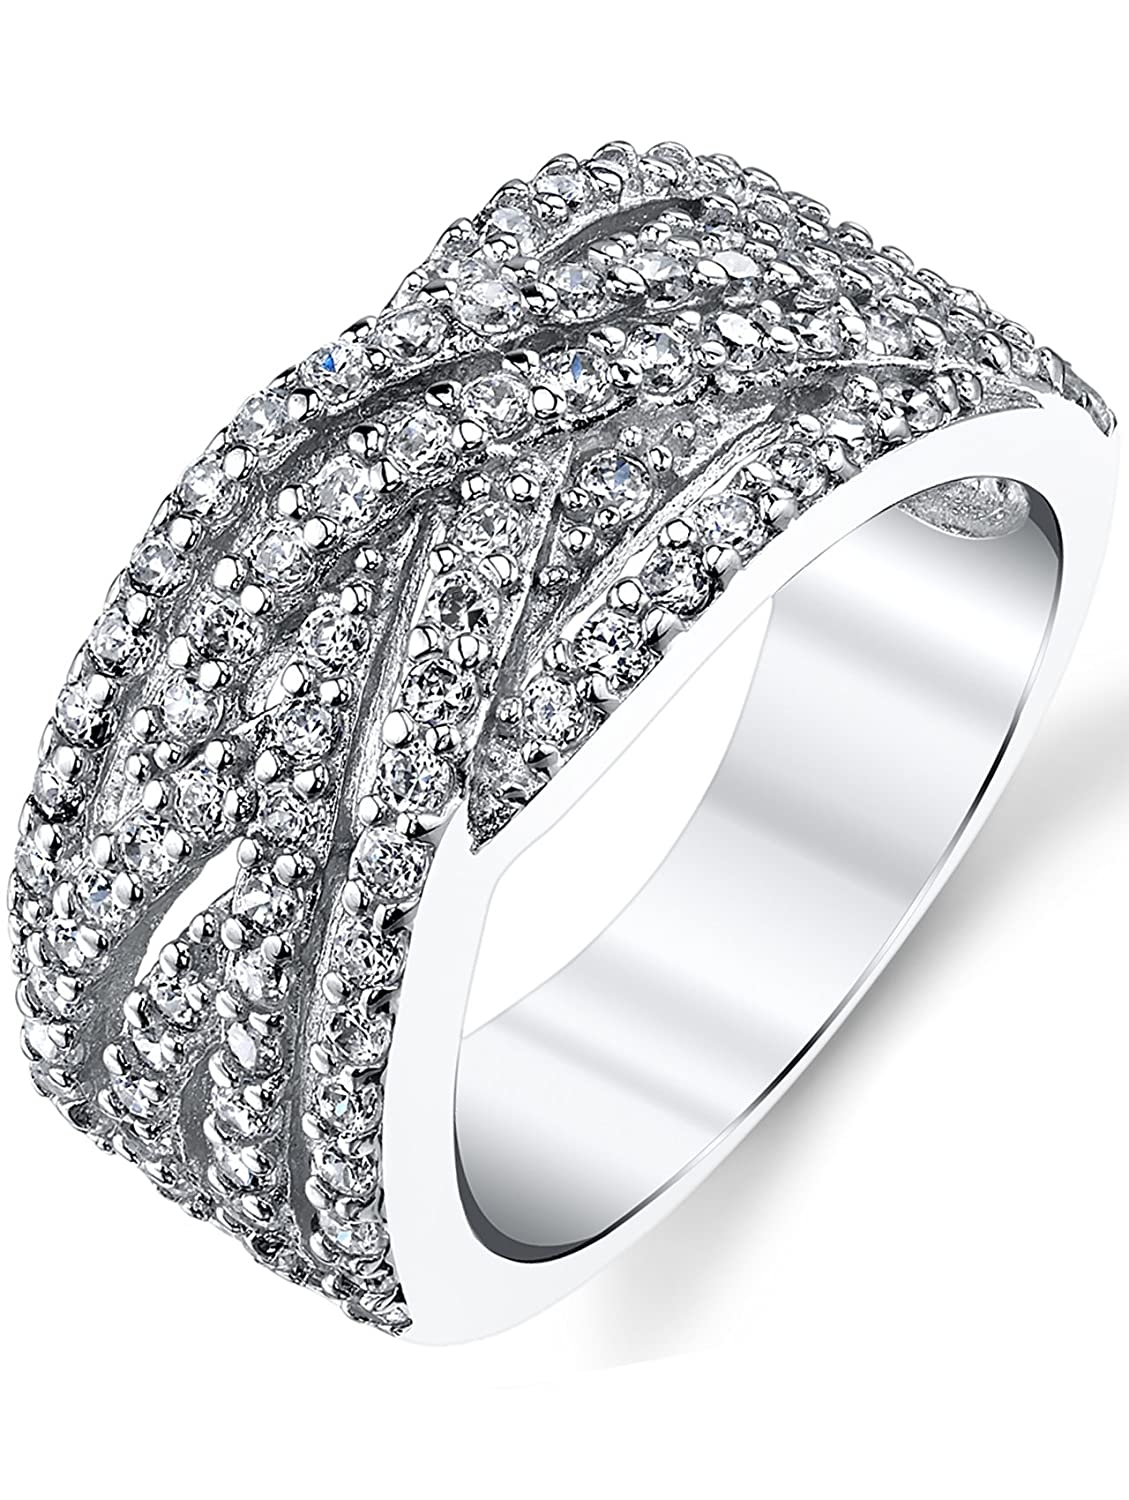 Metal Masters Co. ® 925 Sterling Silver Cubic Zirconia CZ Right Hand Ring Band Sizes 5-9 SILRXXX193